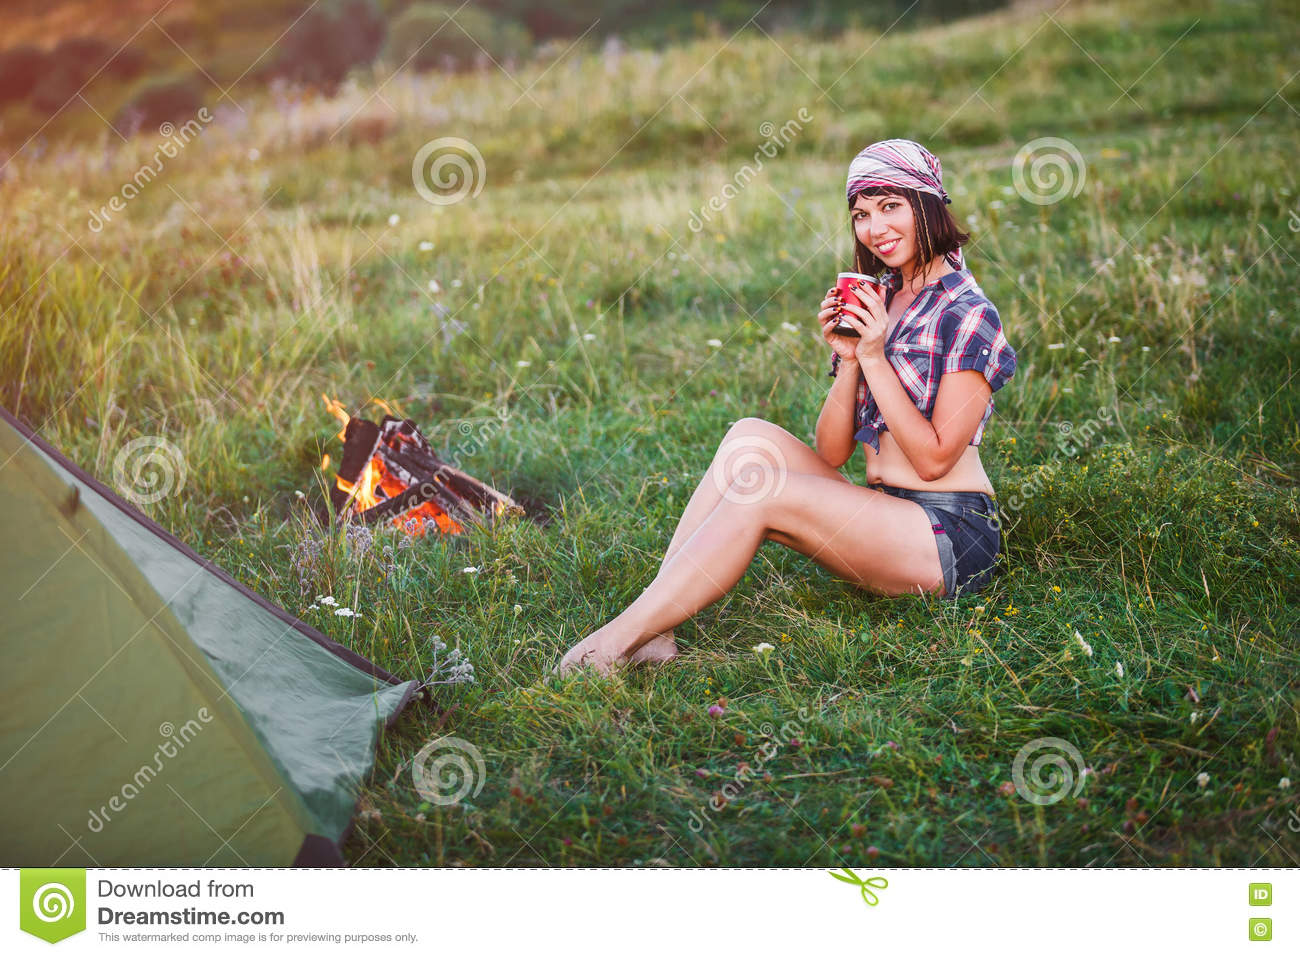 Royalty-Free Stock Photo  sc 1 st  Dreamstime.com & Travel With Bicycle Alone - Young Woman In The Tent Stock Image ...